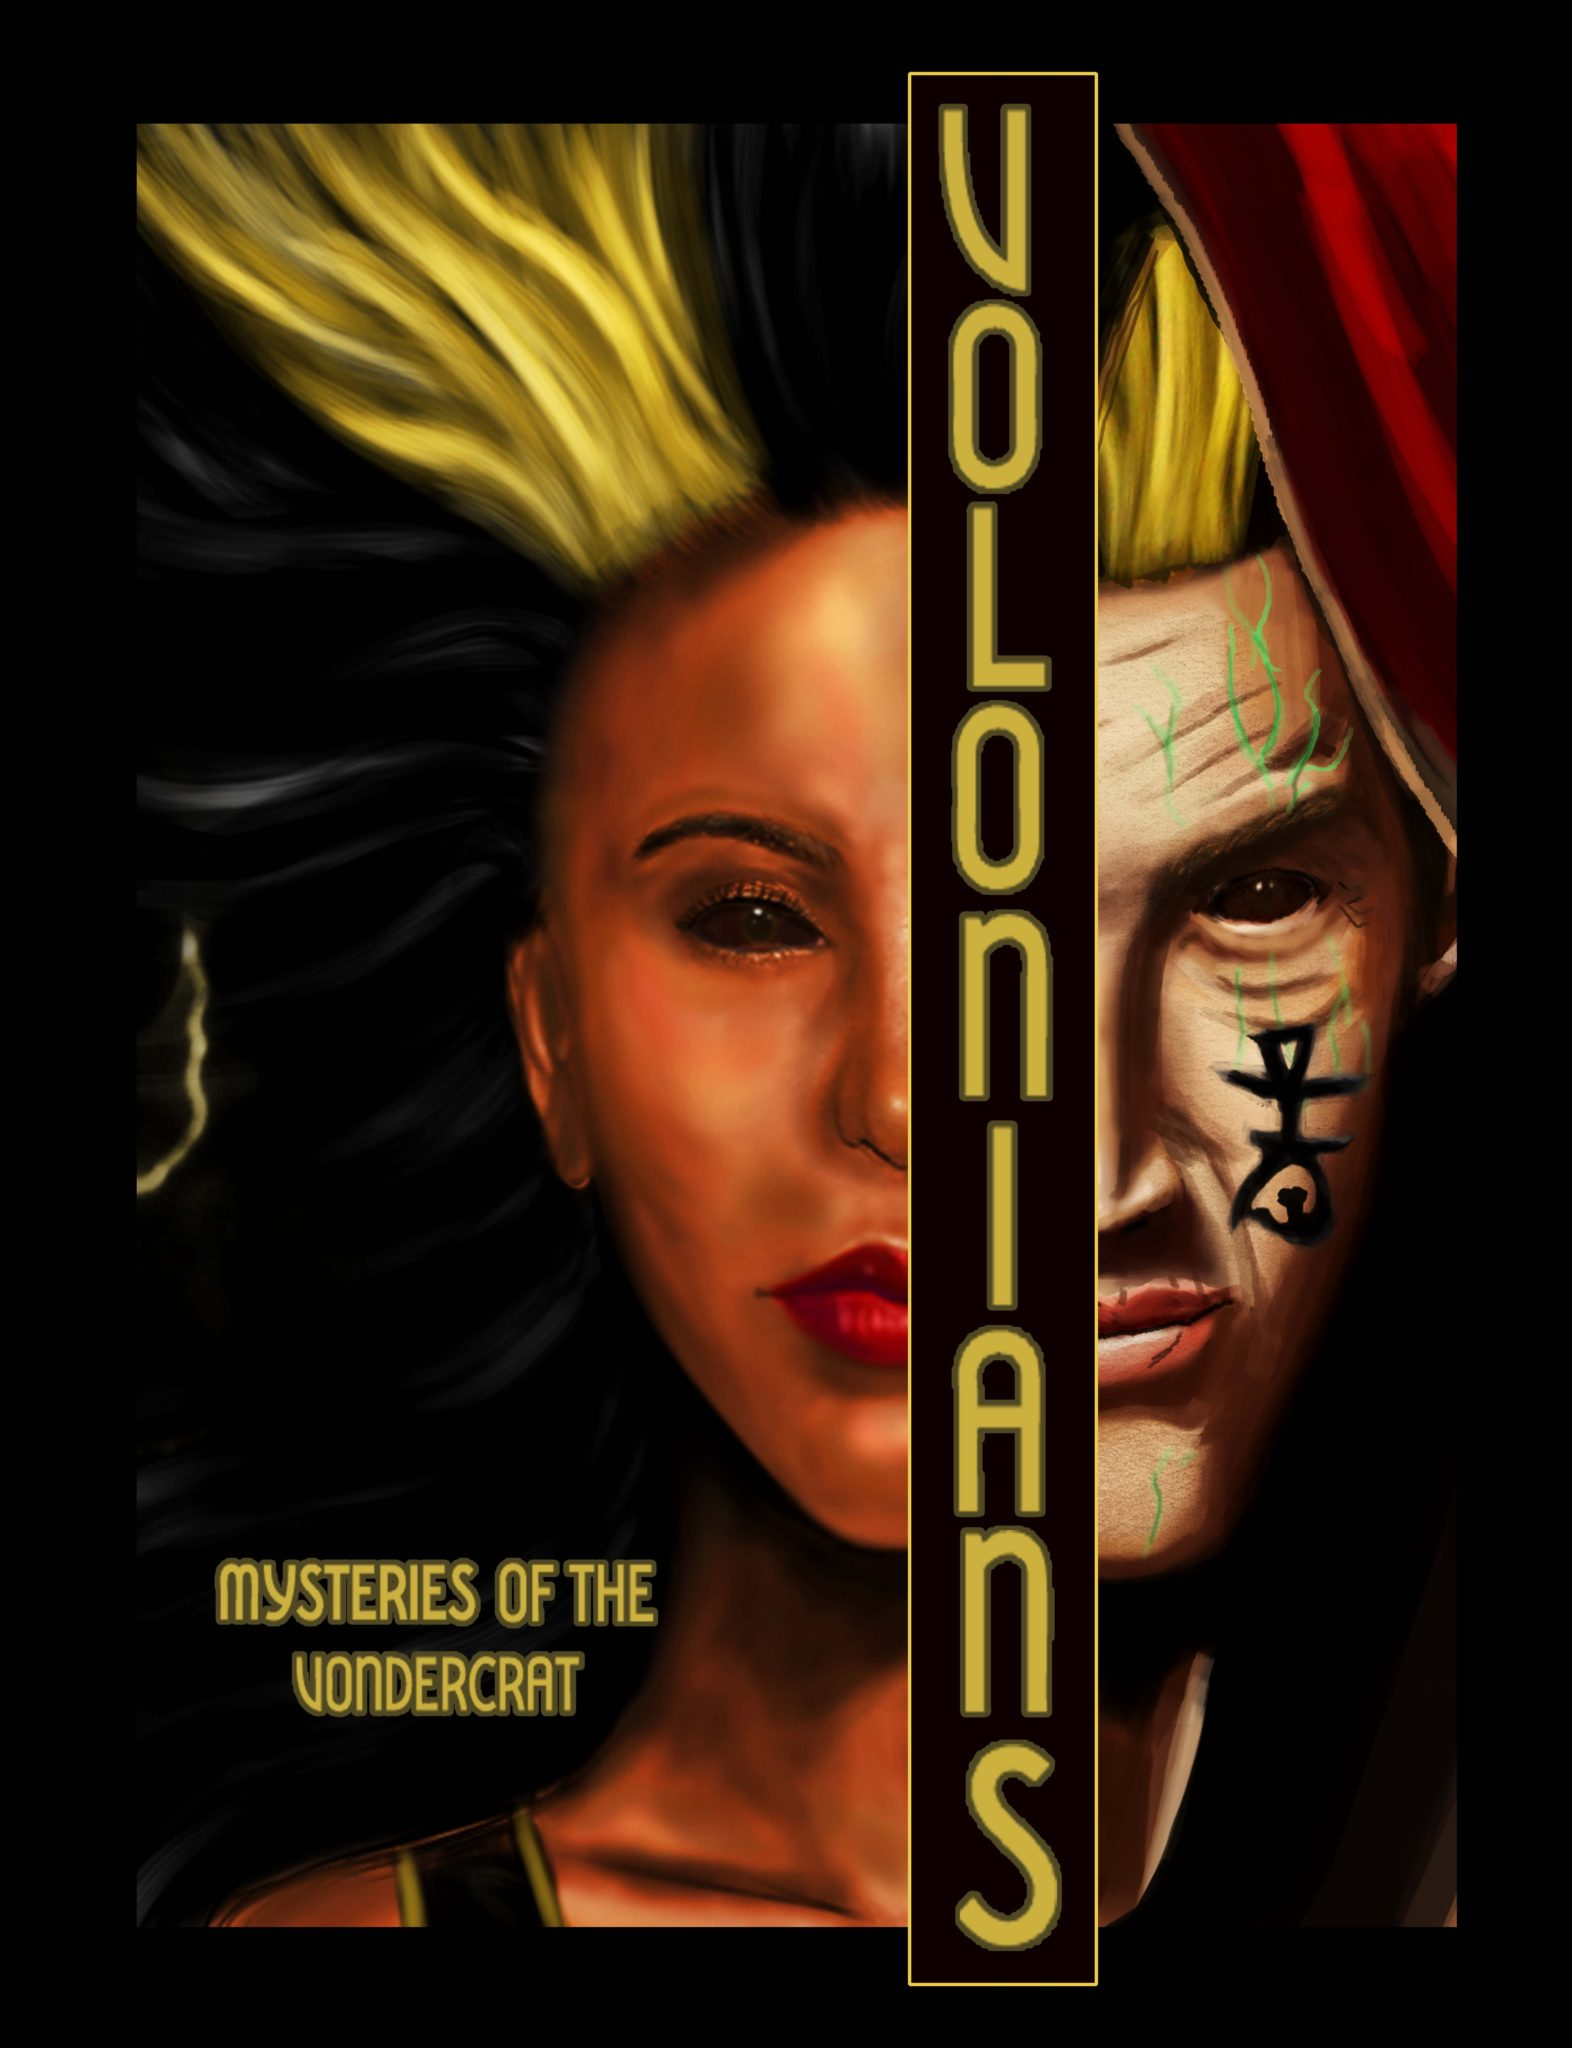 Volonians: Mysteries of the Vondercrat by Christopher F. Edwards Jr